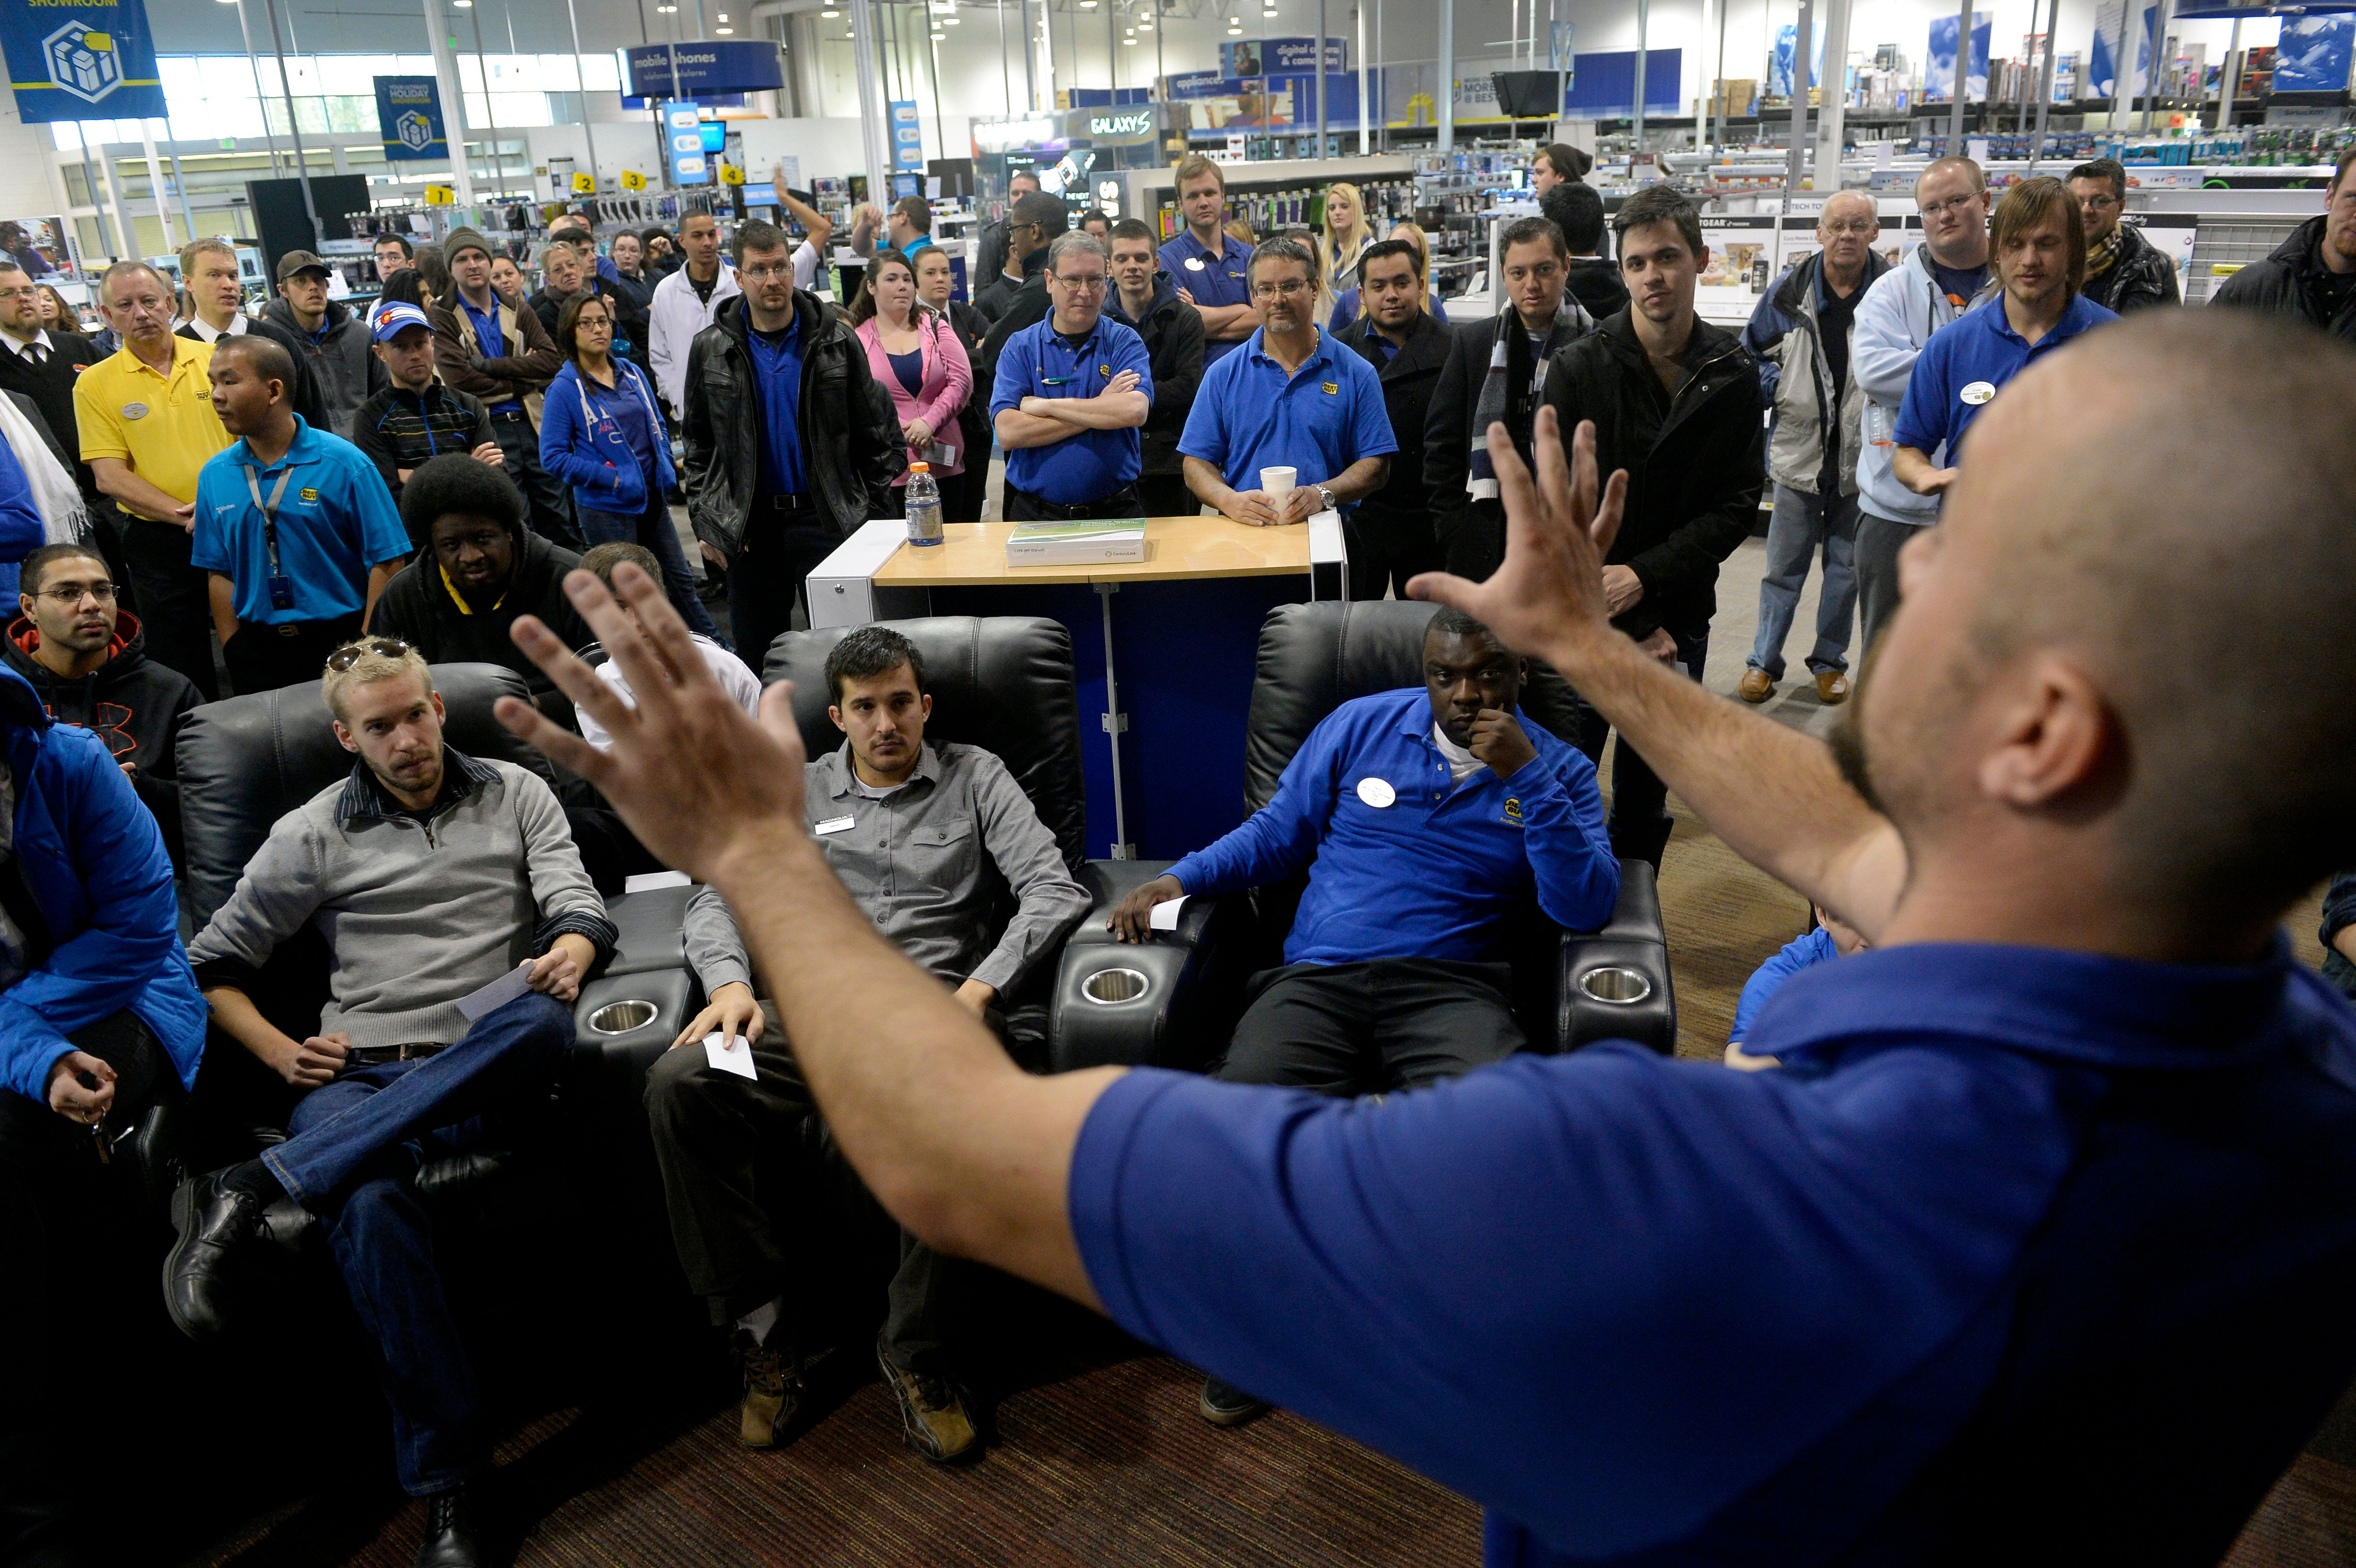 DENVER, CO. - NOVEMBER 23: General Manager Doug Ryan, right, prepares his staff for a Black Friday rehearsal at Best Buy in Denver, CO November 23, 2013. Employees practiced Black Friday scenarios, managing crowds and organizing lines. Sales Manager Kevin Ribbens said it is especially useful for employees that have never worked on the busiest shopping day of the year.  (Photo By Craig F. Walker / The Denver Post)